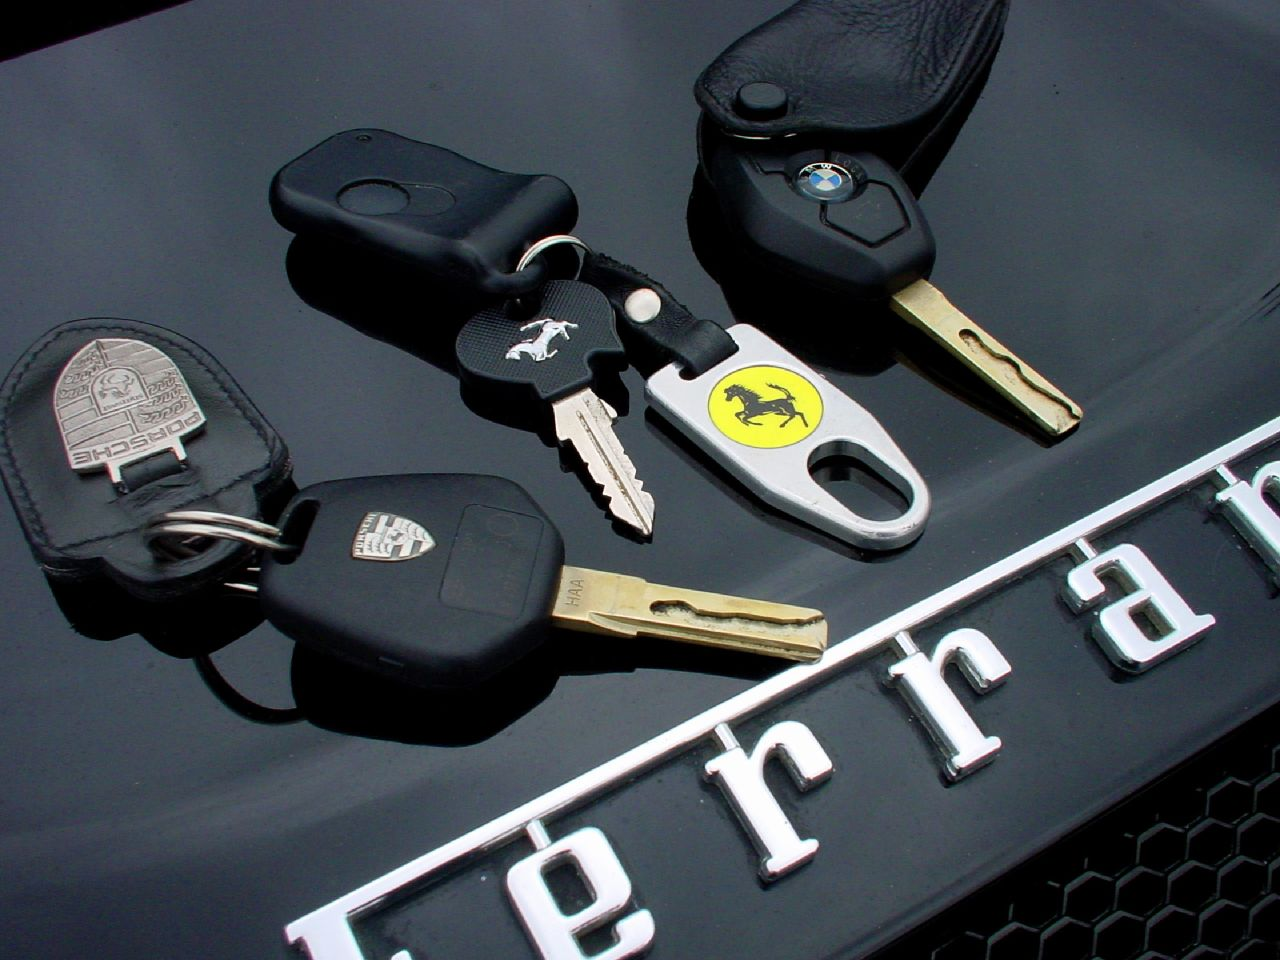 ATLG Auto Locksmith Brisbane